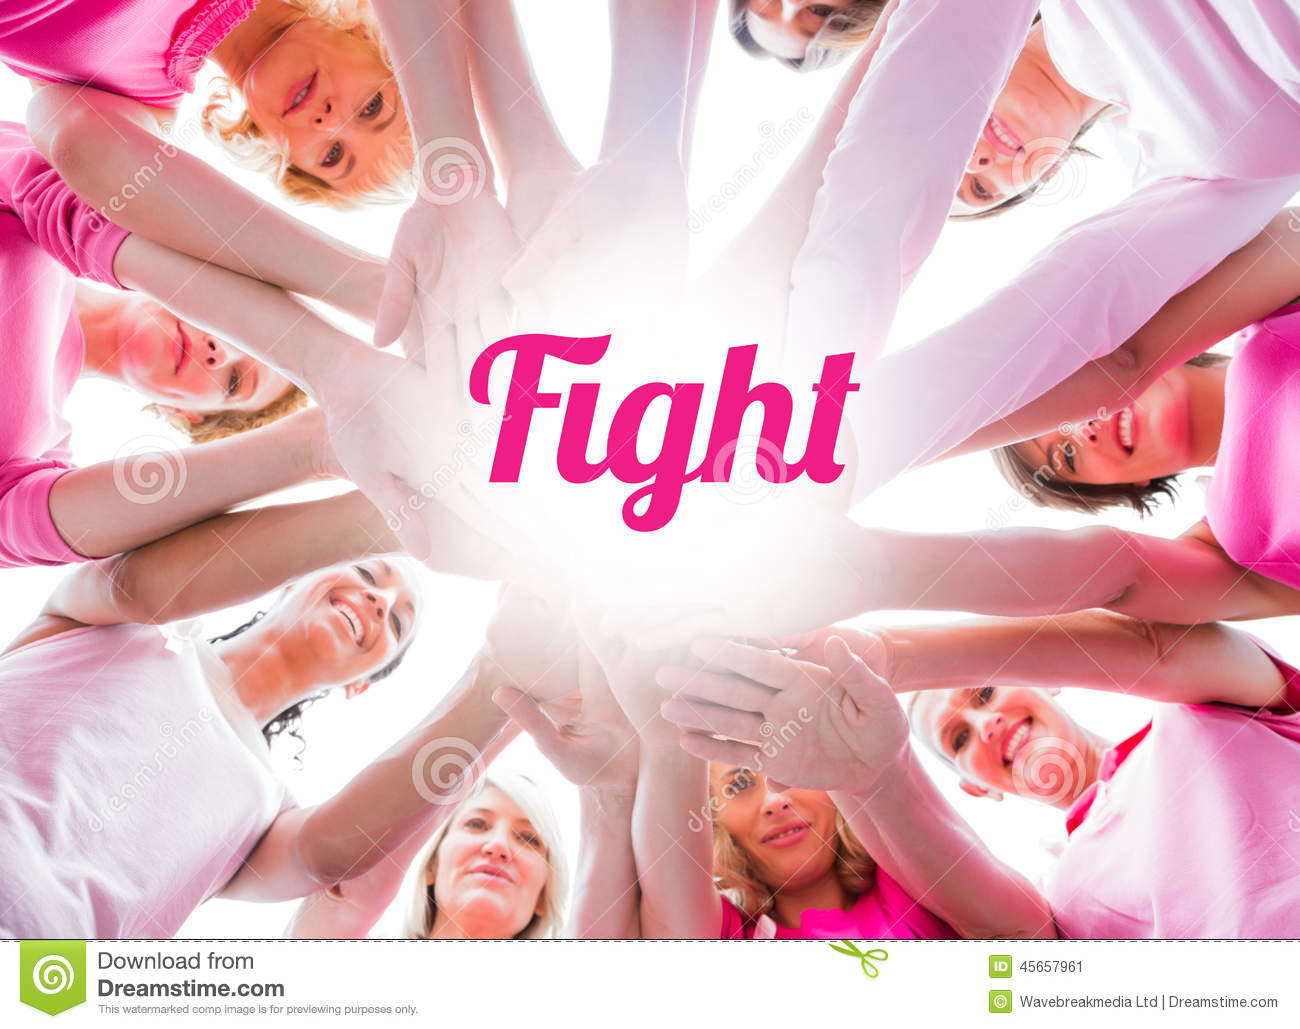 breast cancer in women Breast cancer is the most common non-skin cancer among american women one in eight women will develop invasive breast cancer during her lifetime but advances in breast cancer treatment.